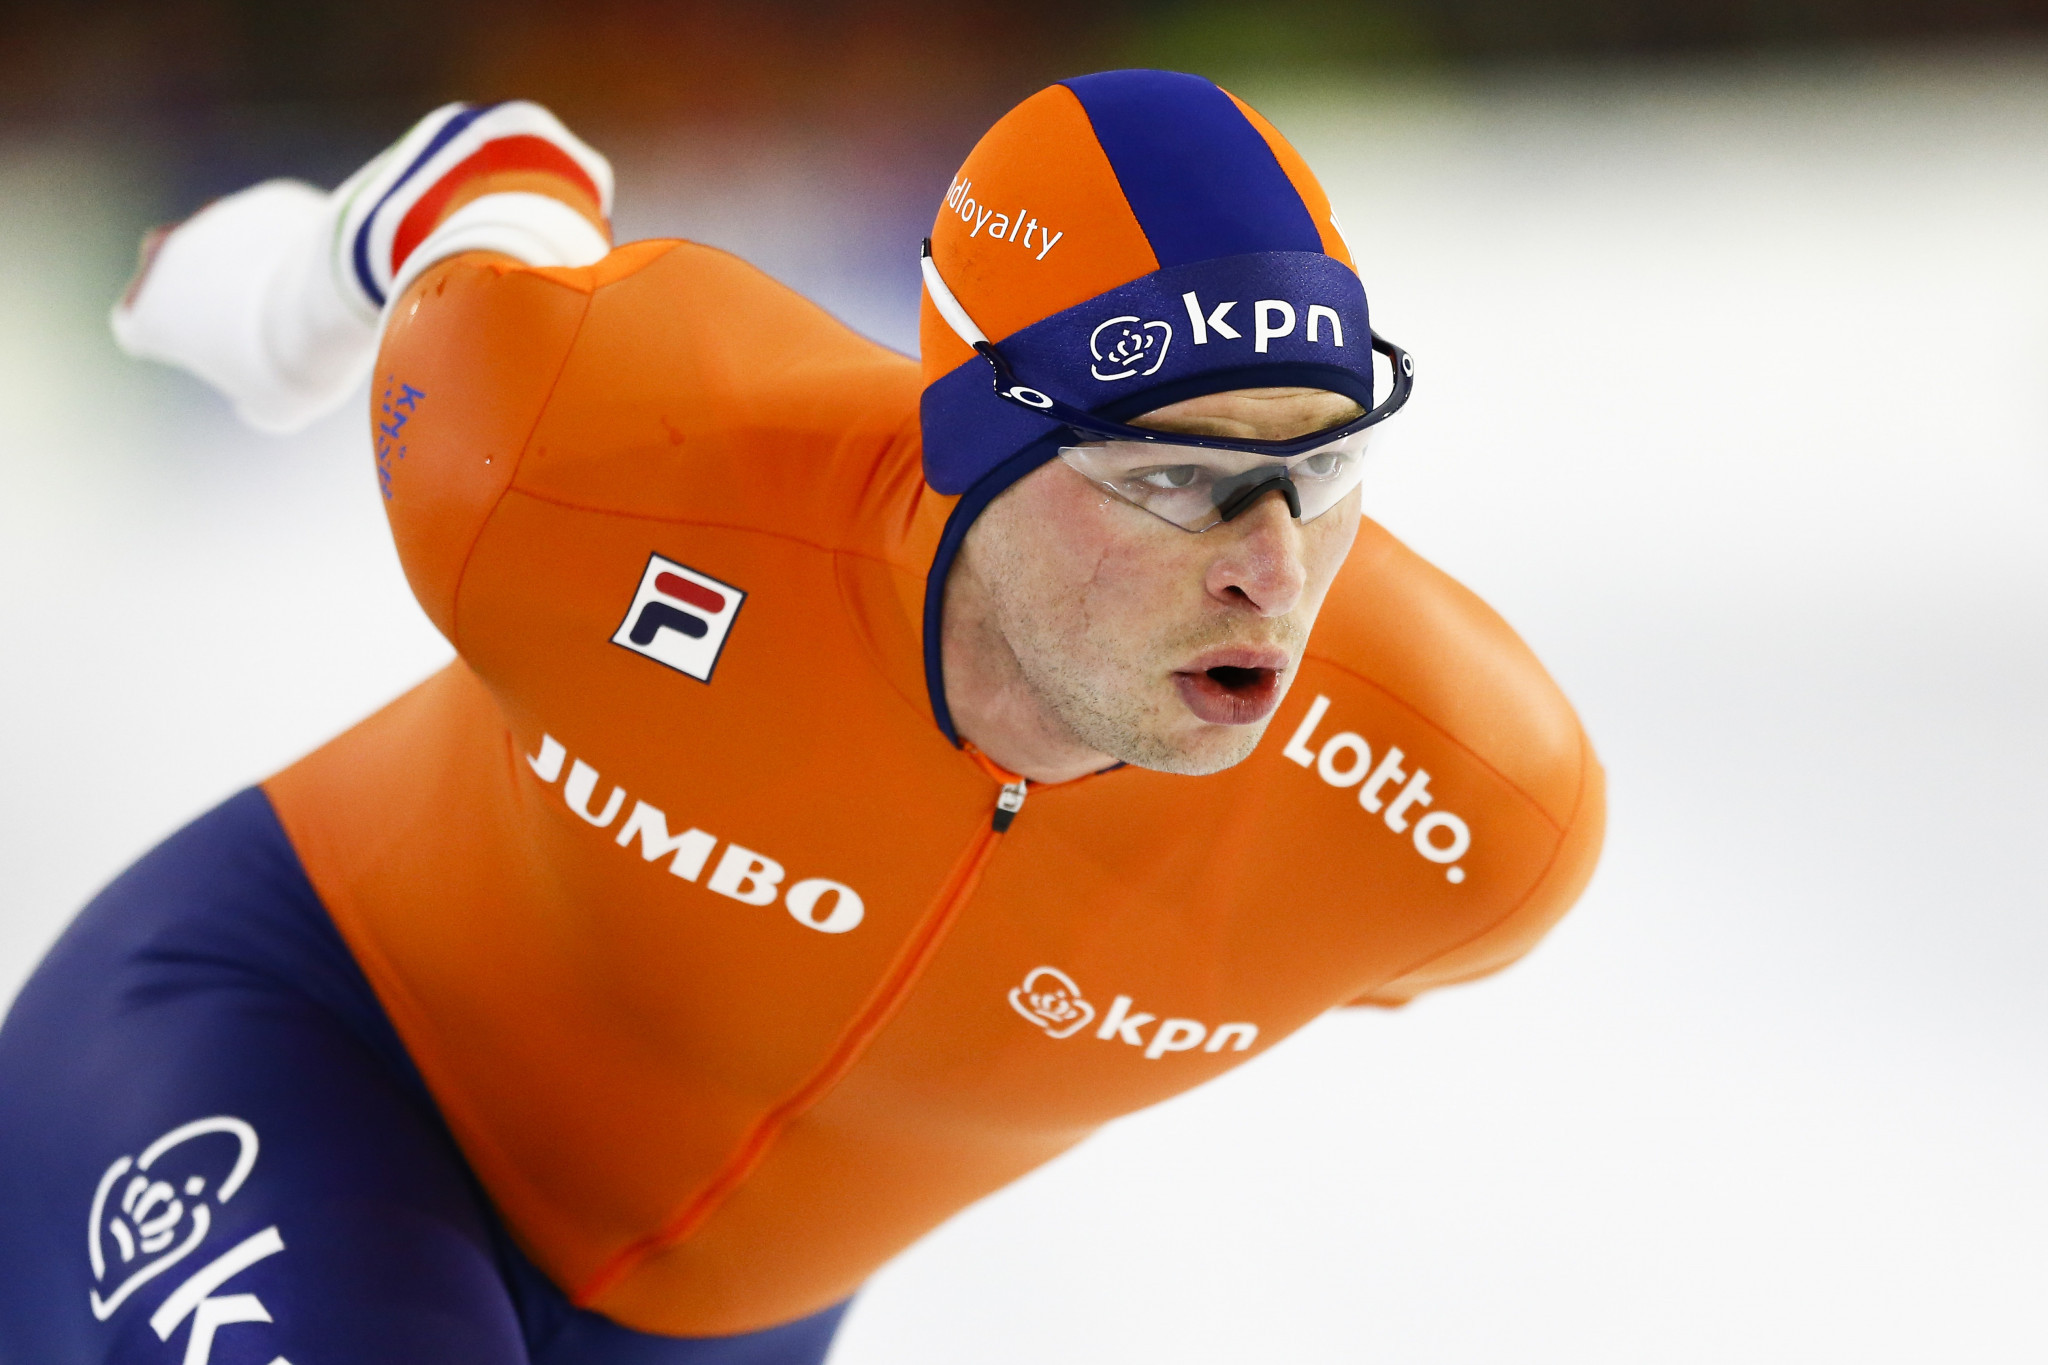 Sven Kramer was among other winners on the first day of competition ©Getty Images